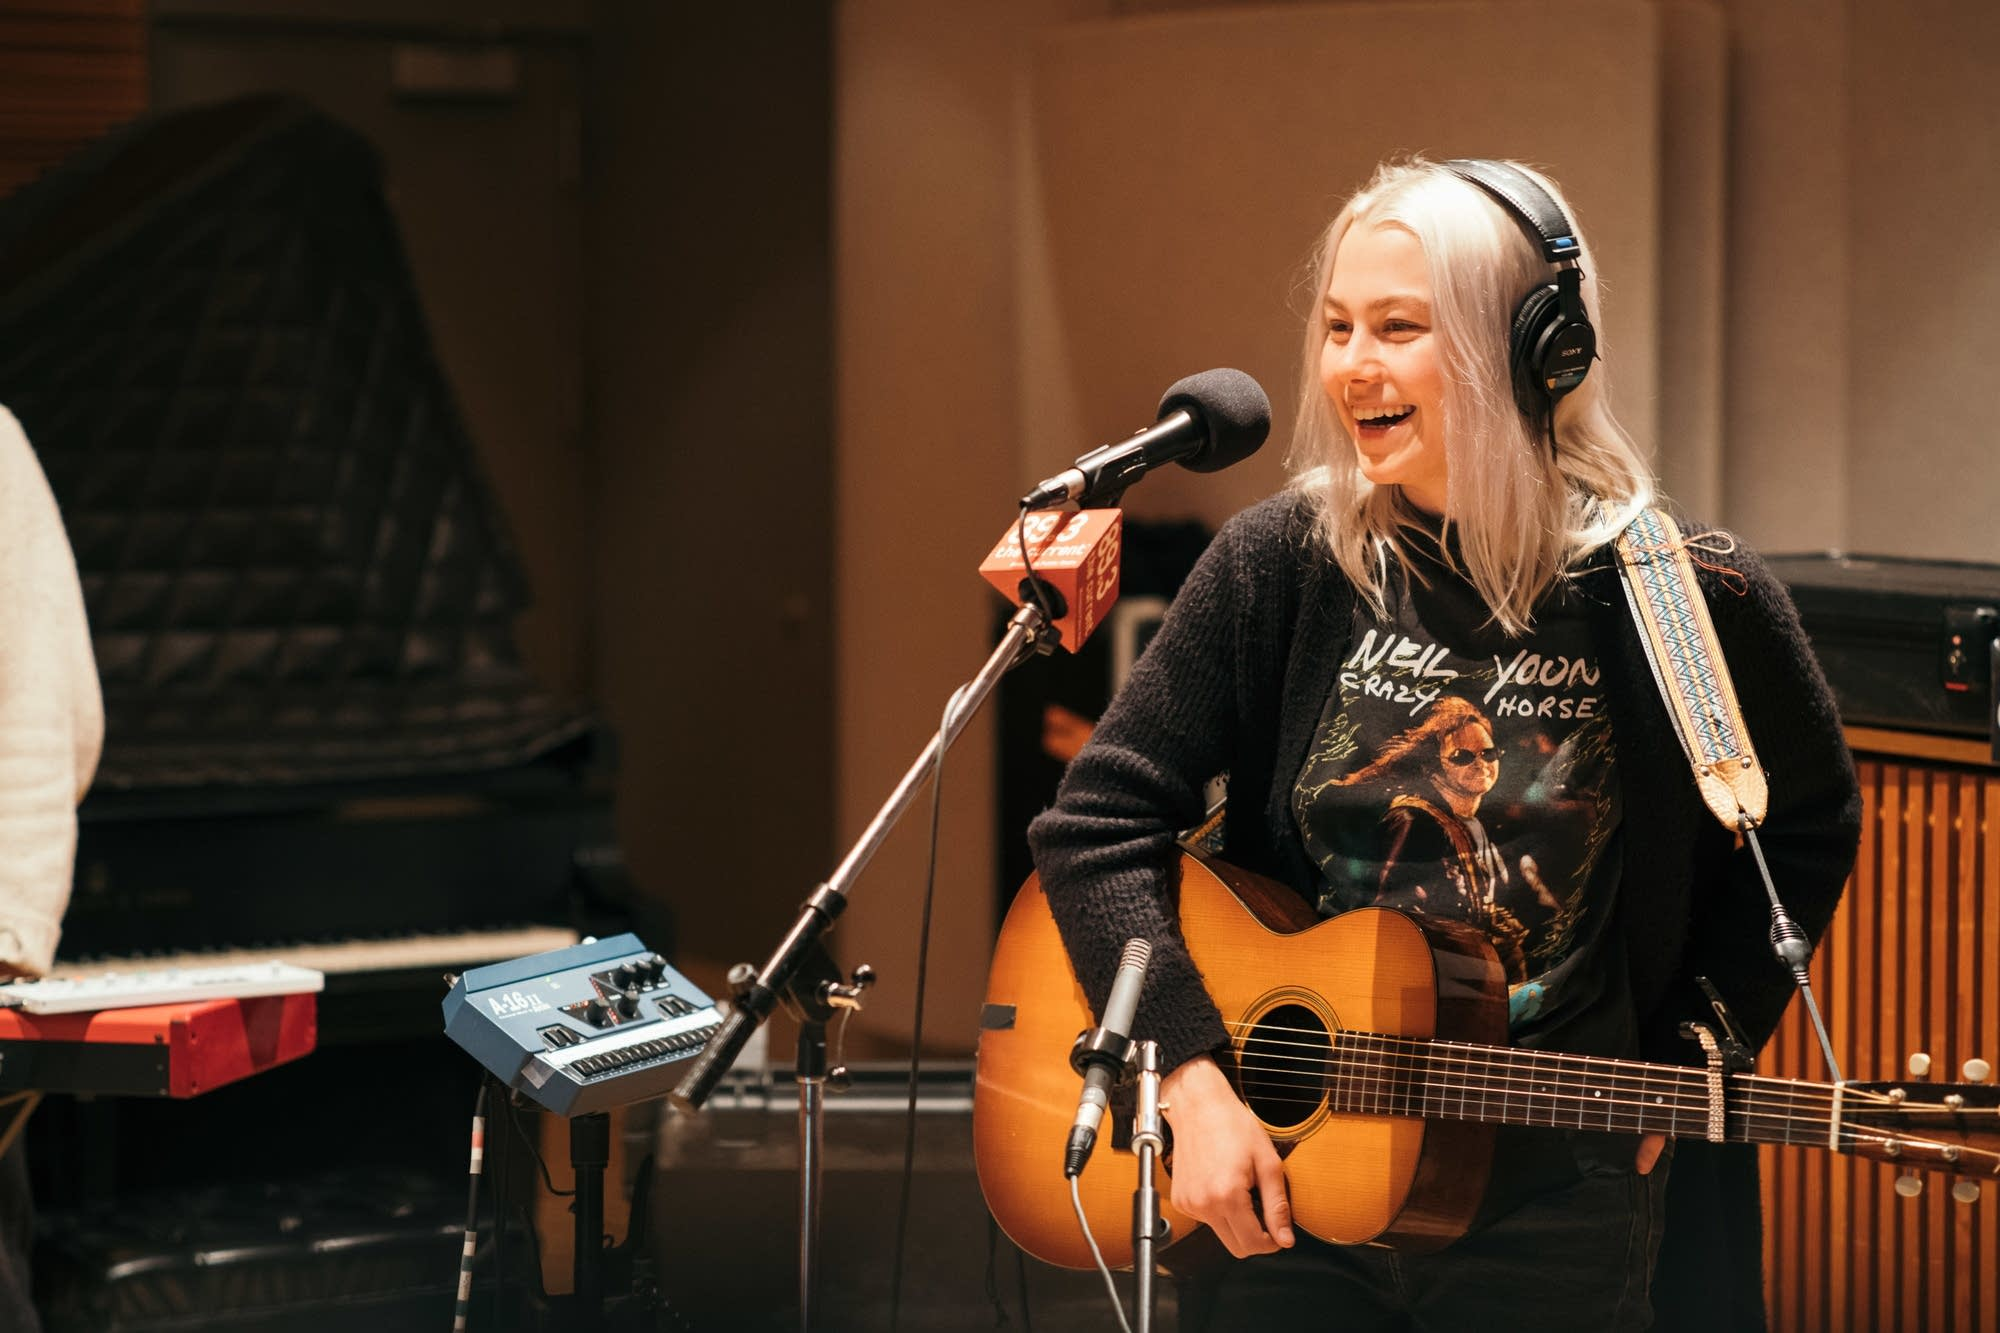 Phoebe Bridgers performs in The Current studio